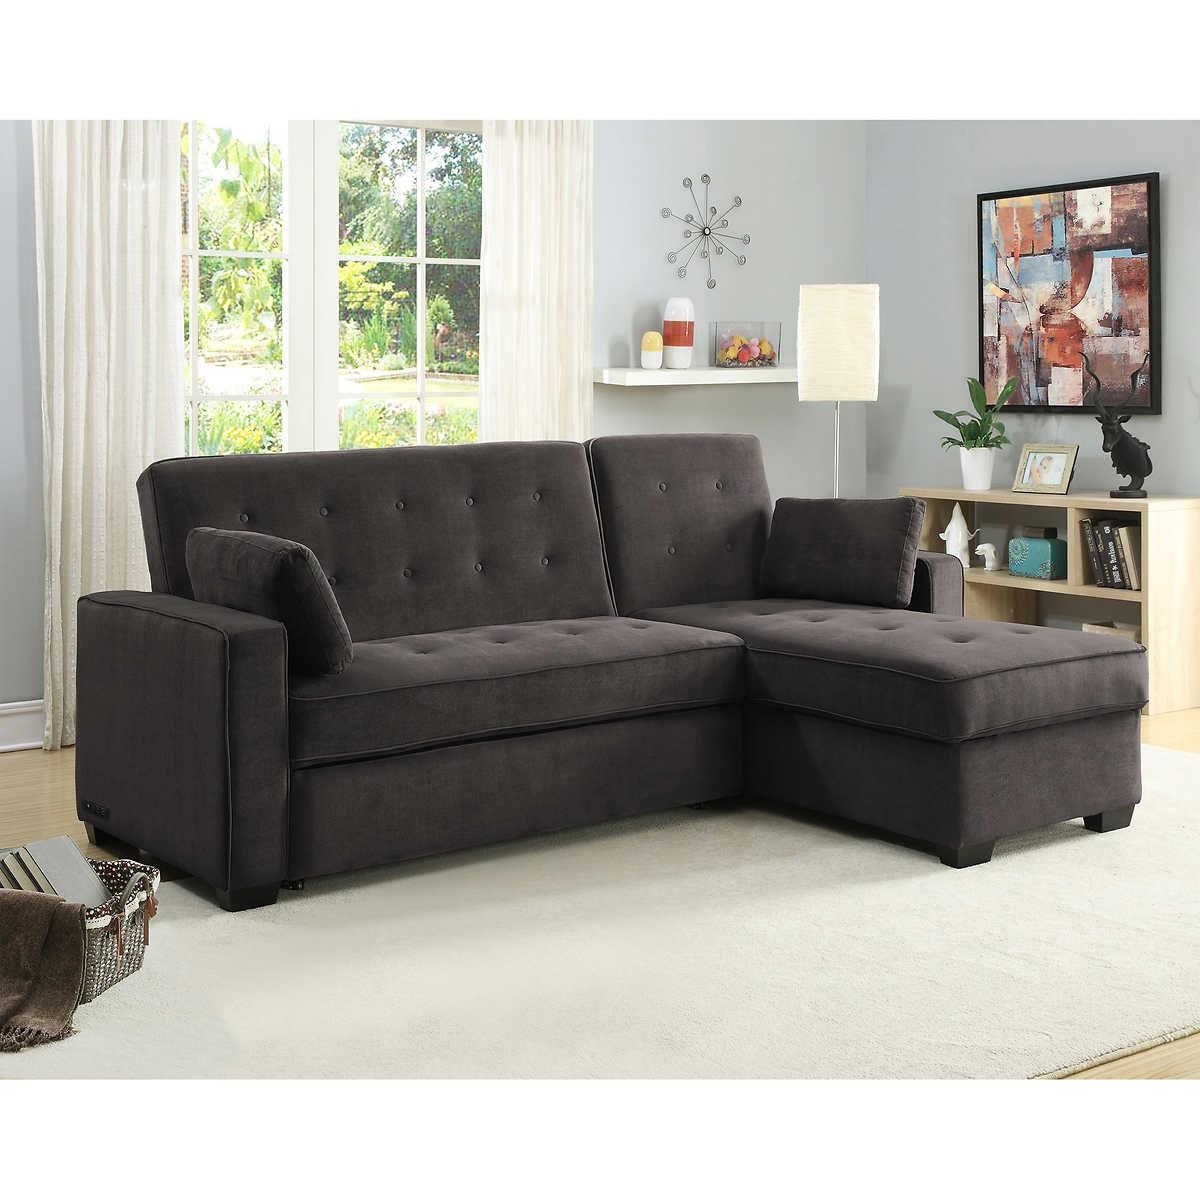 Sofas Center : Berkline Reclining Sofa Costco Cosco Sofas Power For Berkline Recliner Sofas (Image 5 of 20)